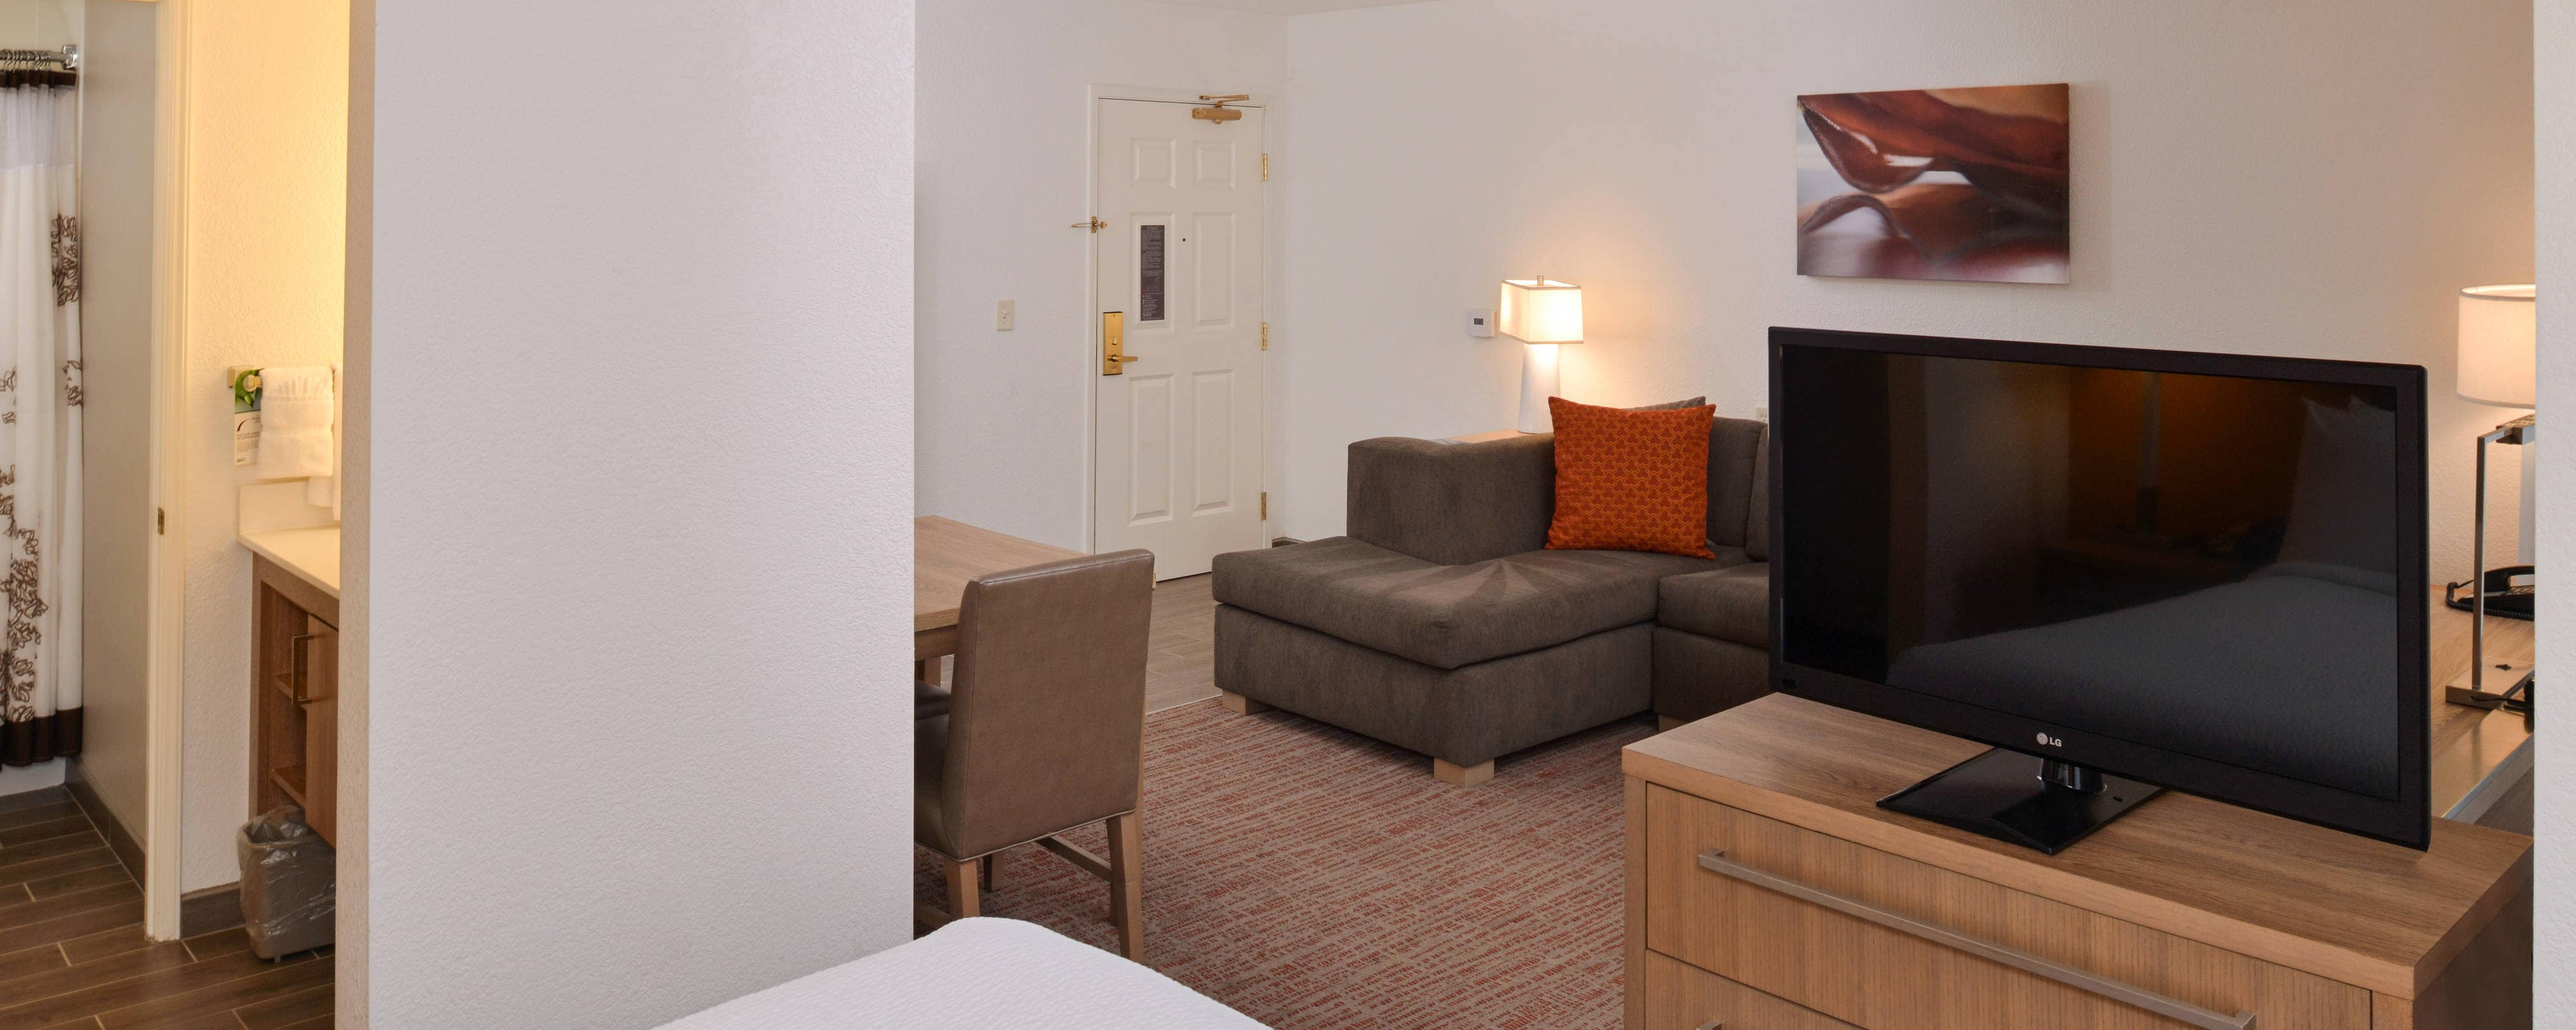 studio suite near Stanford University